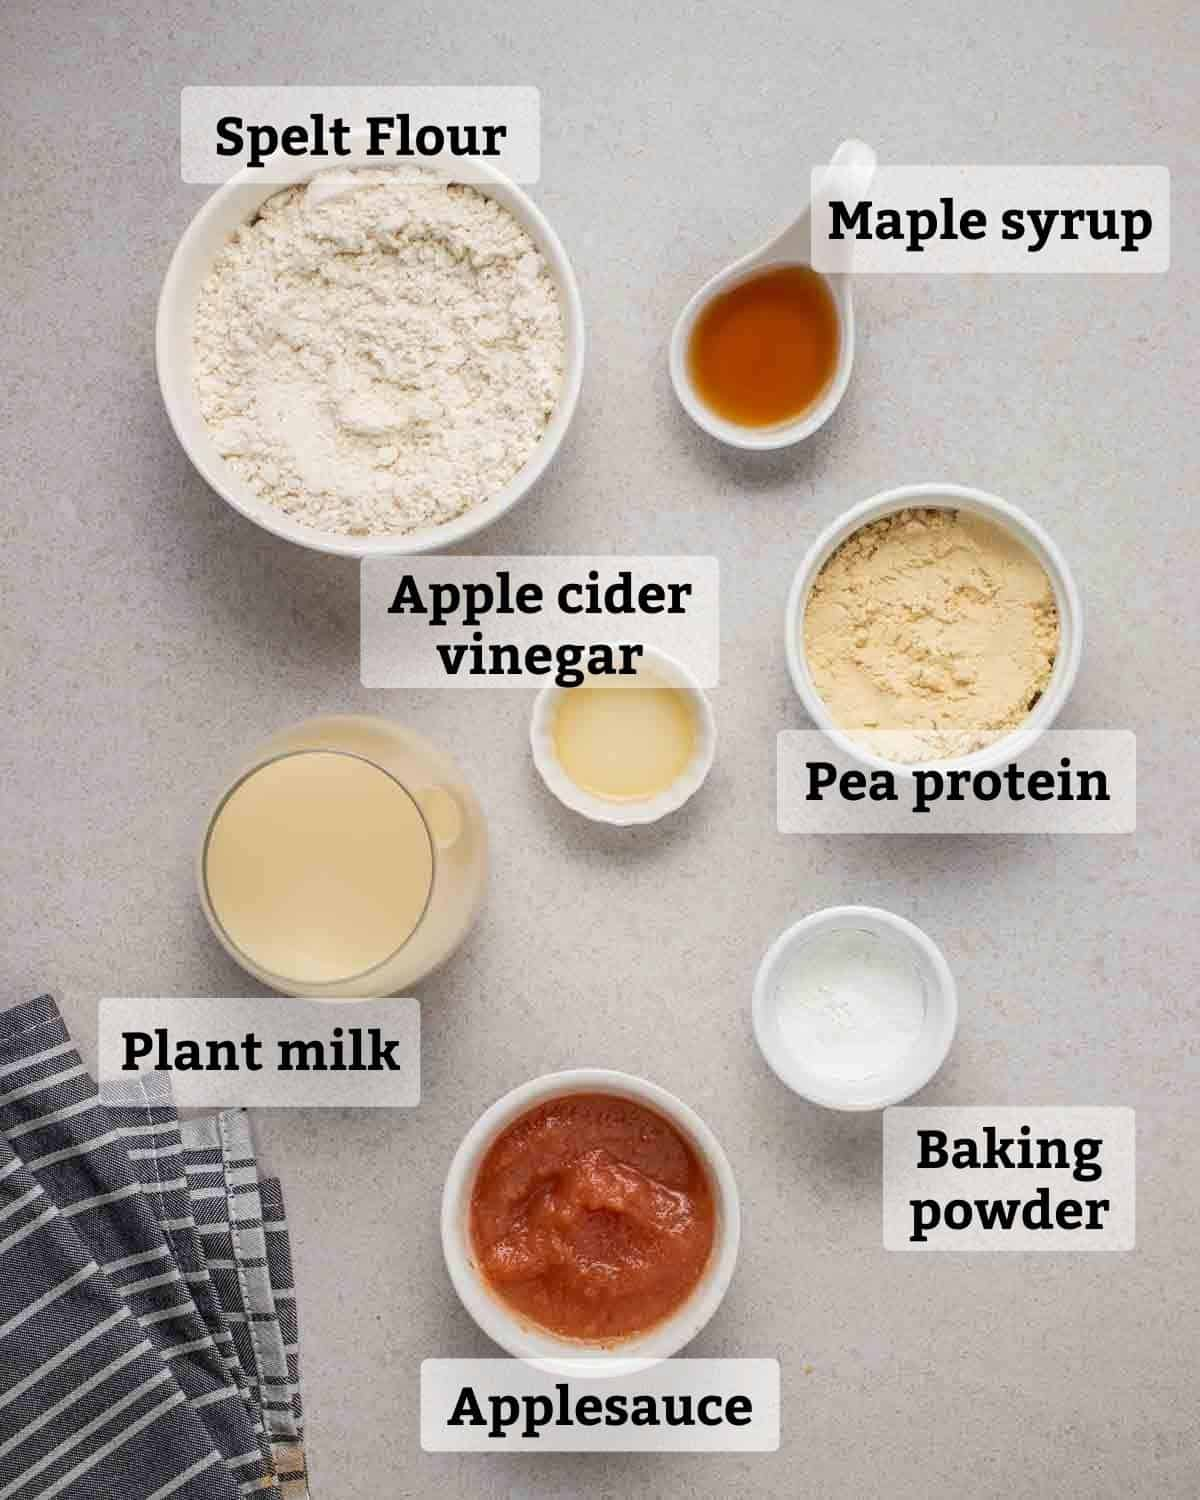 Ingredients needed like spelt flour, pea protein, milk and applesauce on a grey background.